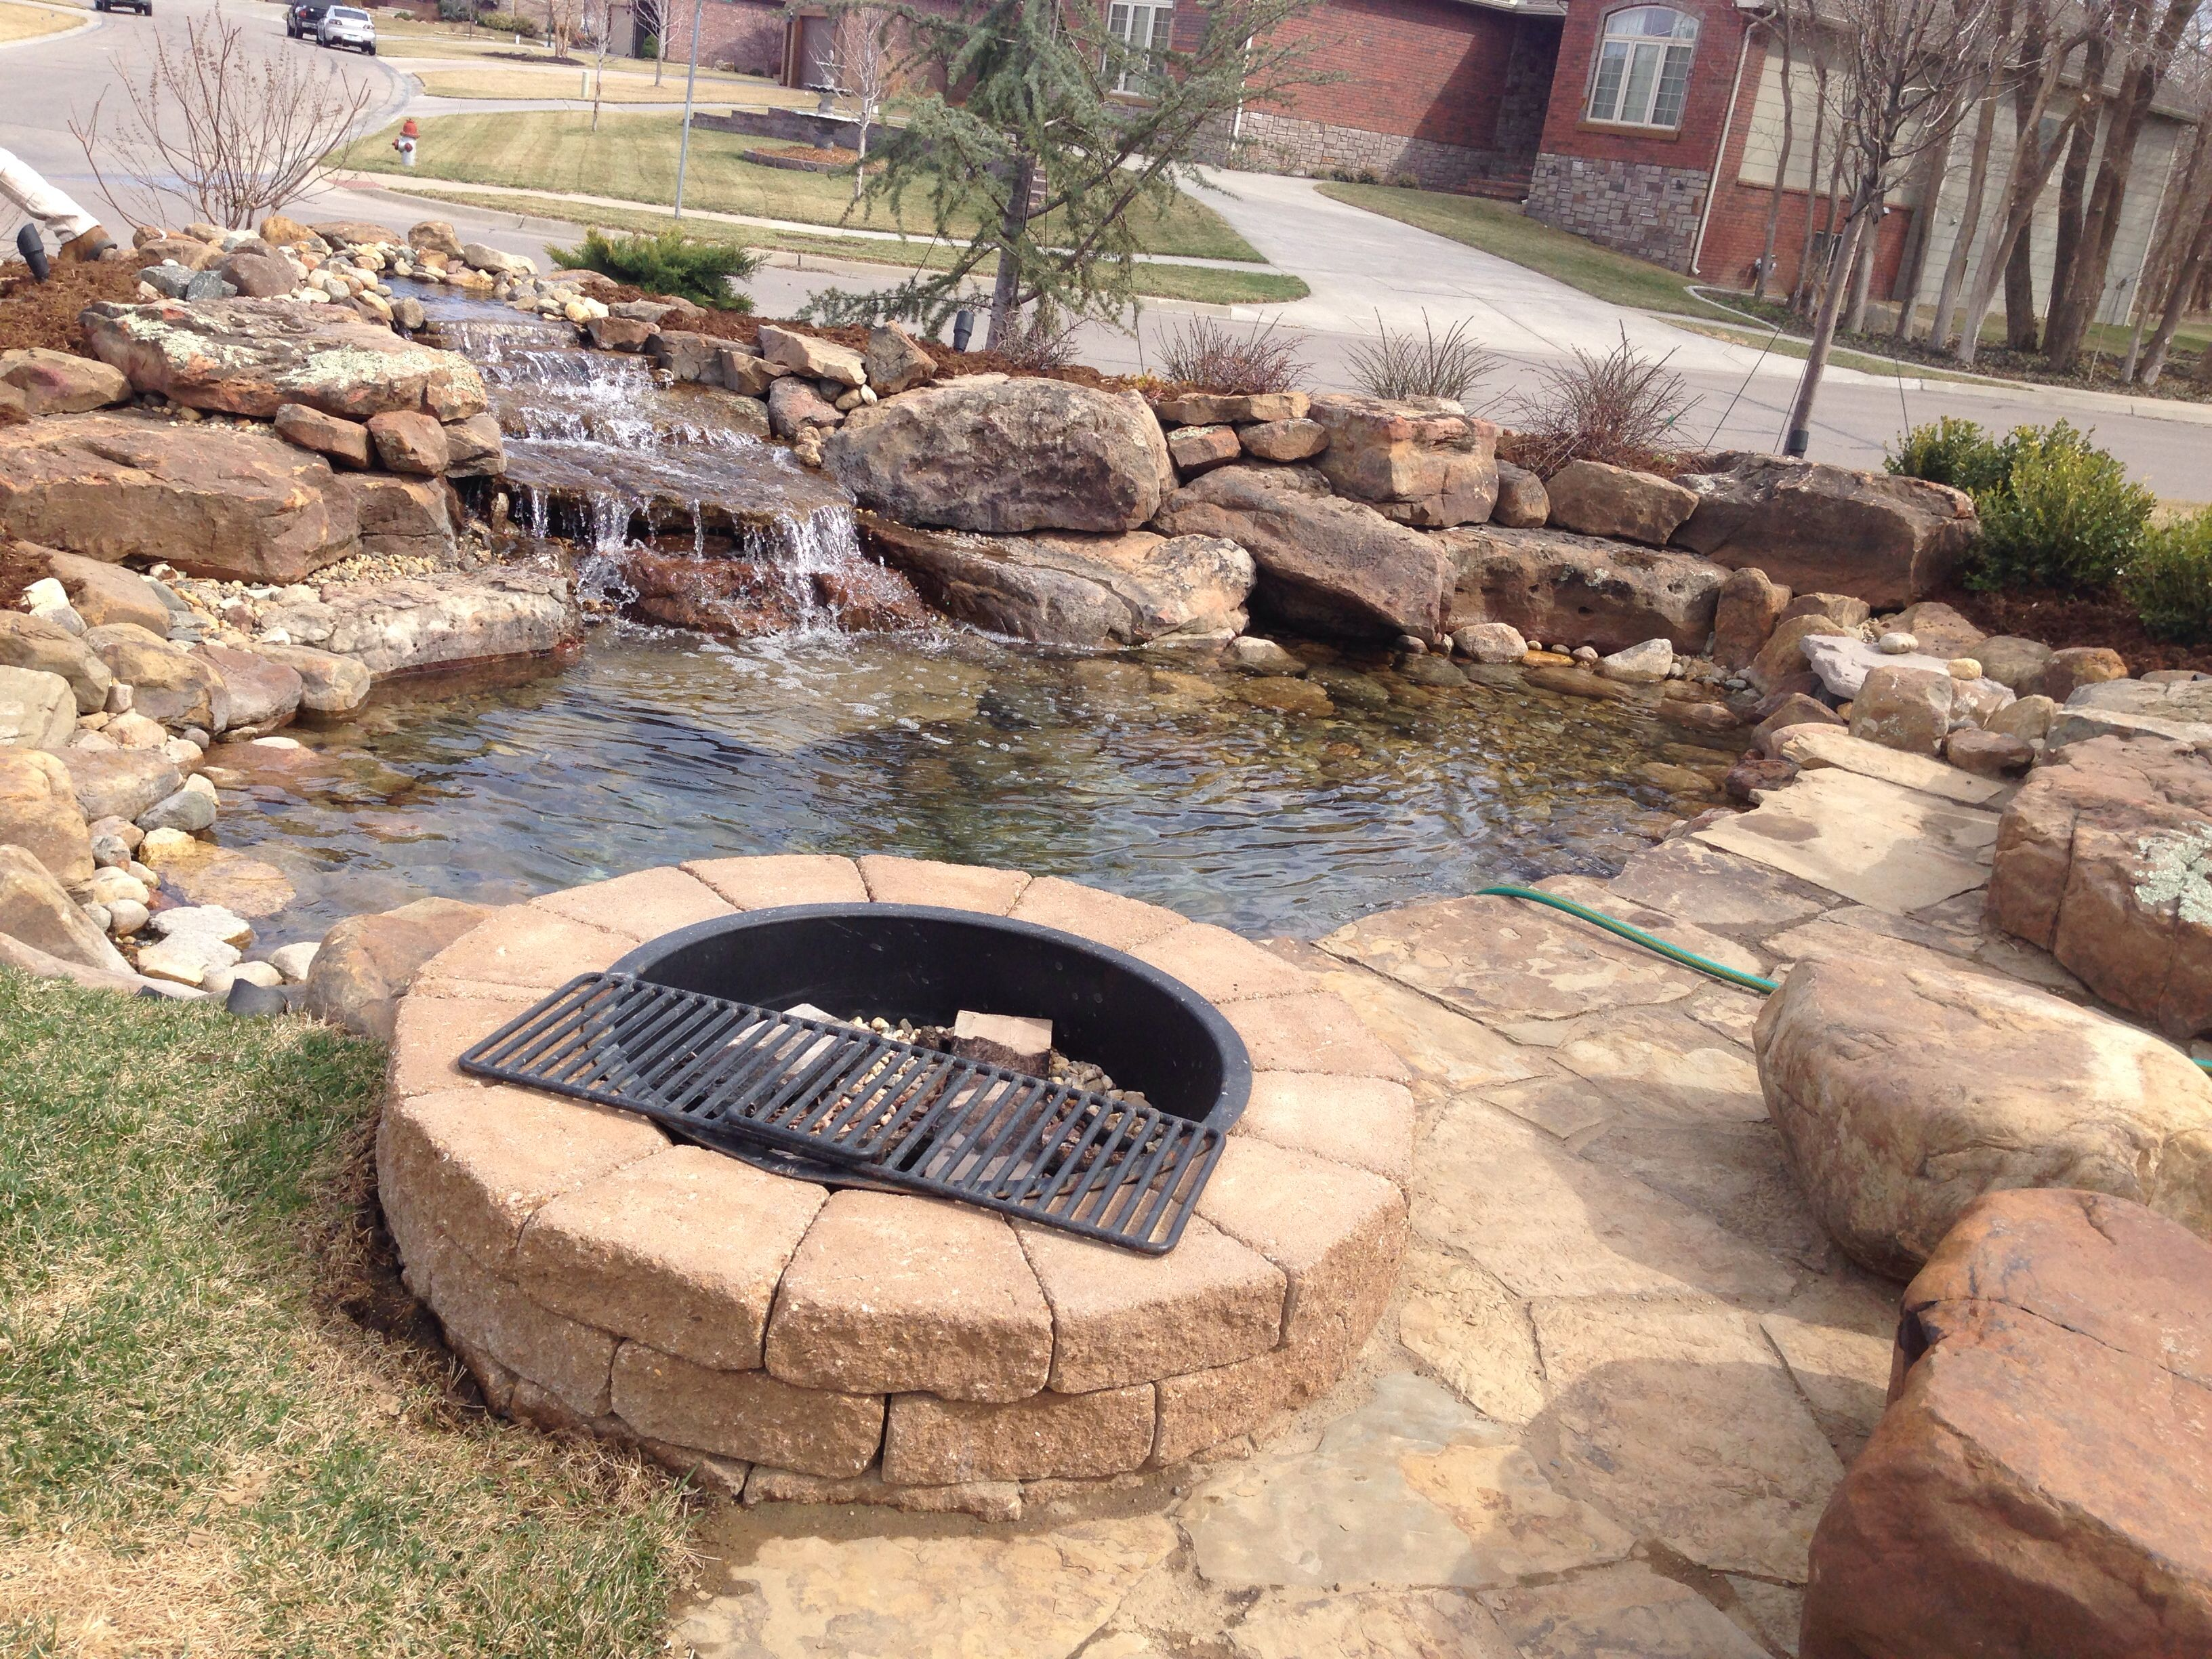 Pond side fire pit | For the Home | Pinterest | Pond, Yard ideas and Pondside Backyard Ideas Fire on barn fire ideas, backyard fire friends, backyard fire places, backyard fire art, deck fire ideas, backyard fire pit, wall fire ideas, outdoor fire ideas, backyard fire designs, halloween fire ideas,